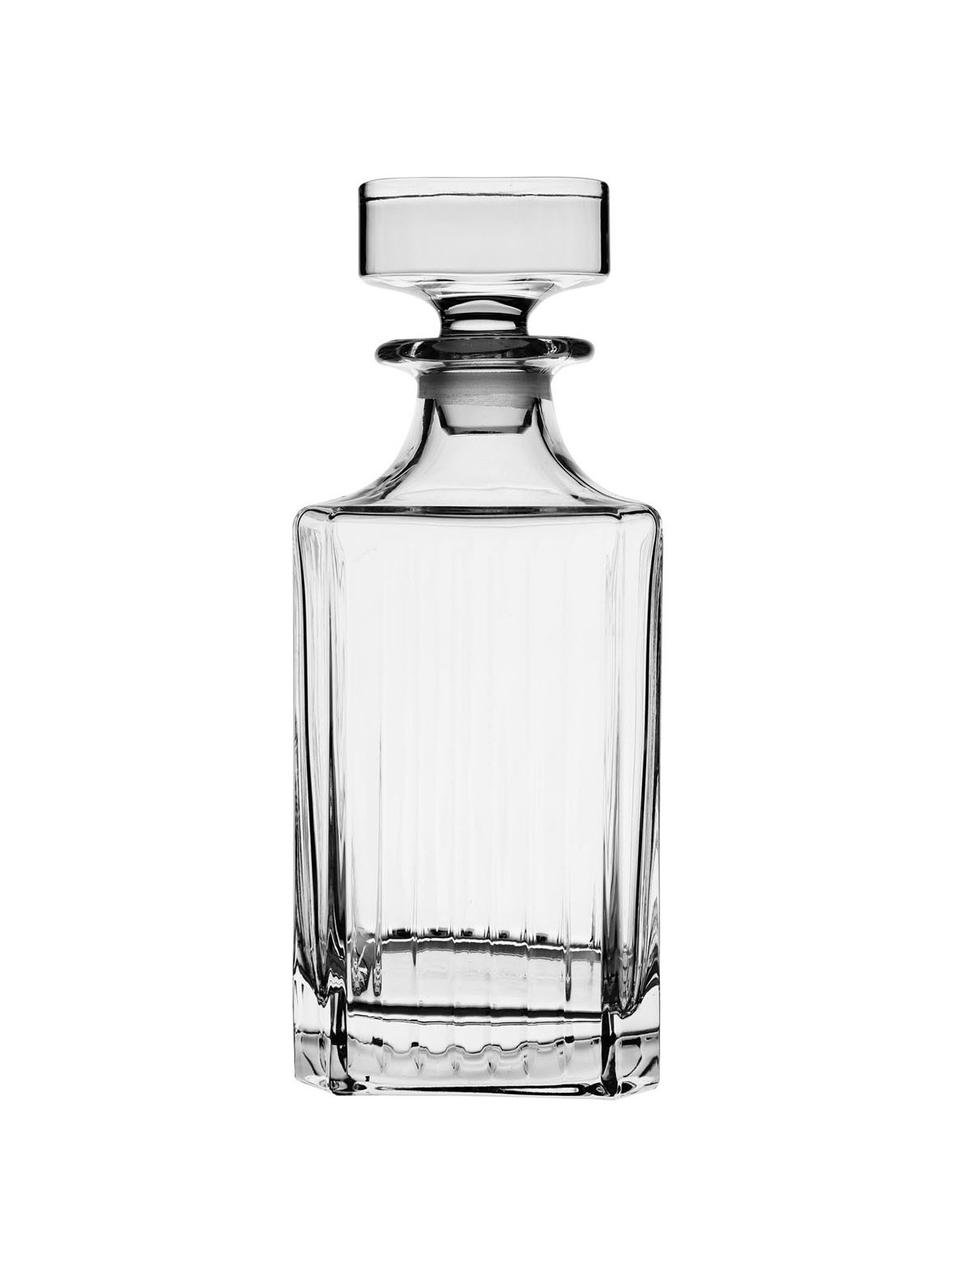 Kristall-Dekanter Timeless mit Rillenrelief, 750 ml, Kristallglas, Transparent, H 24 cm